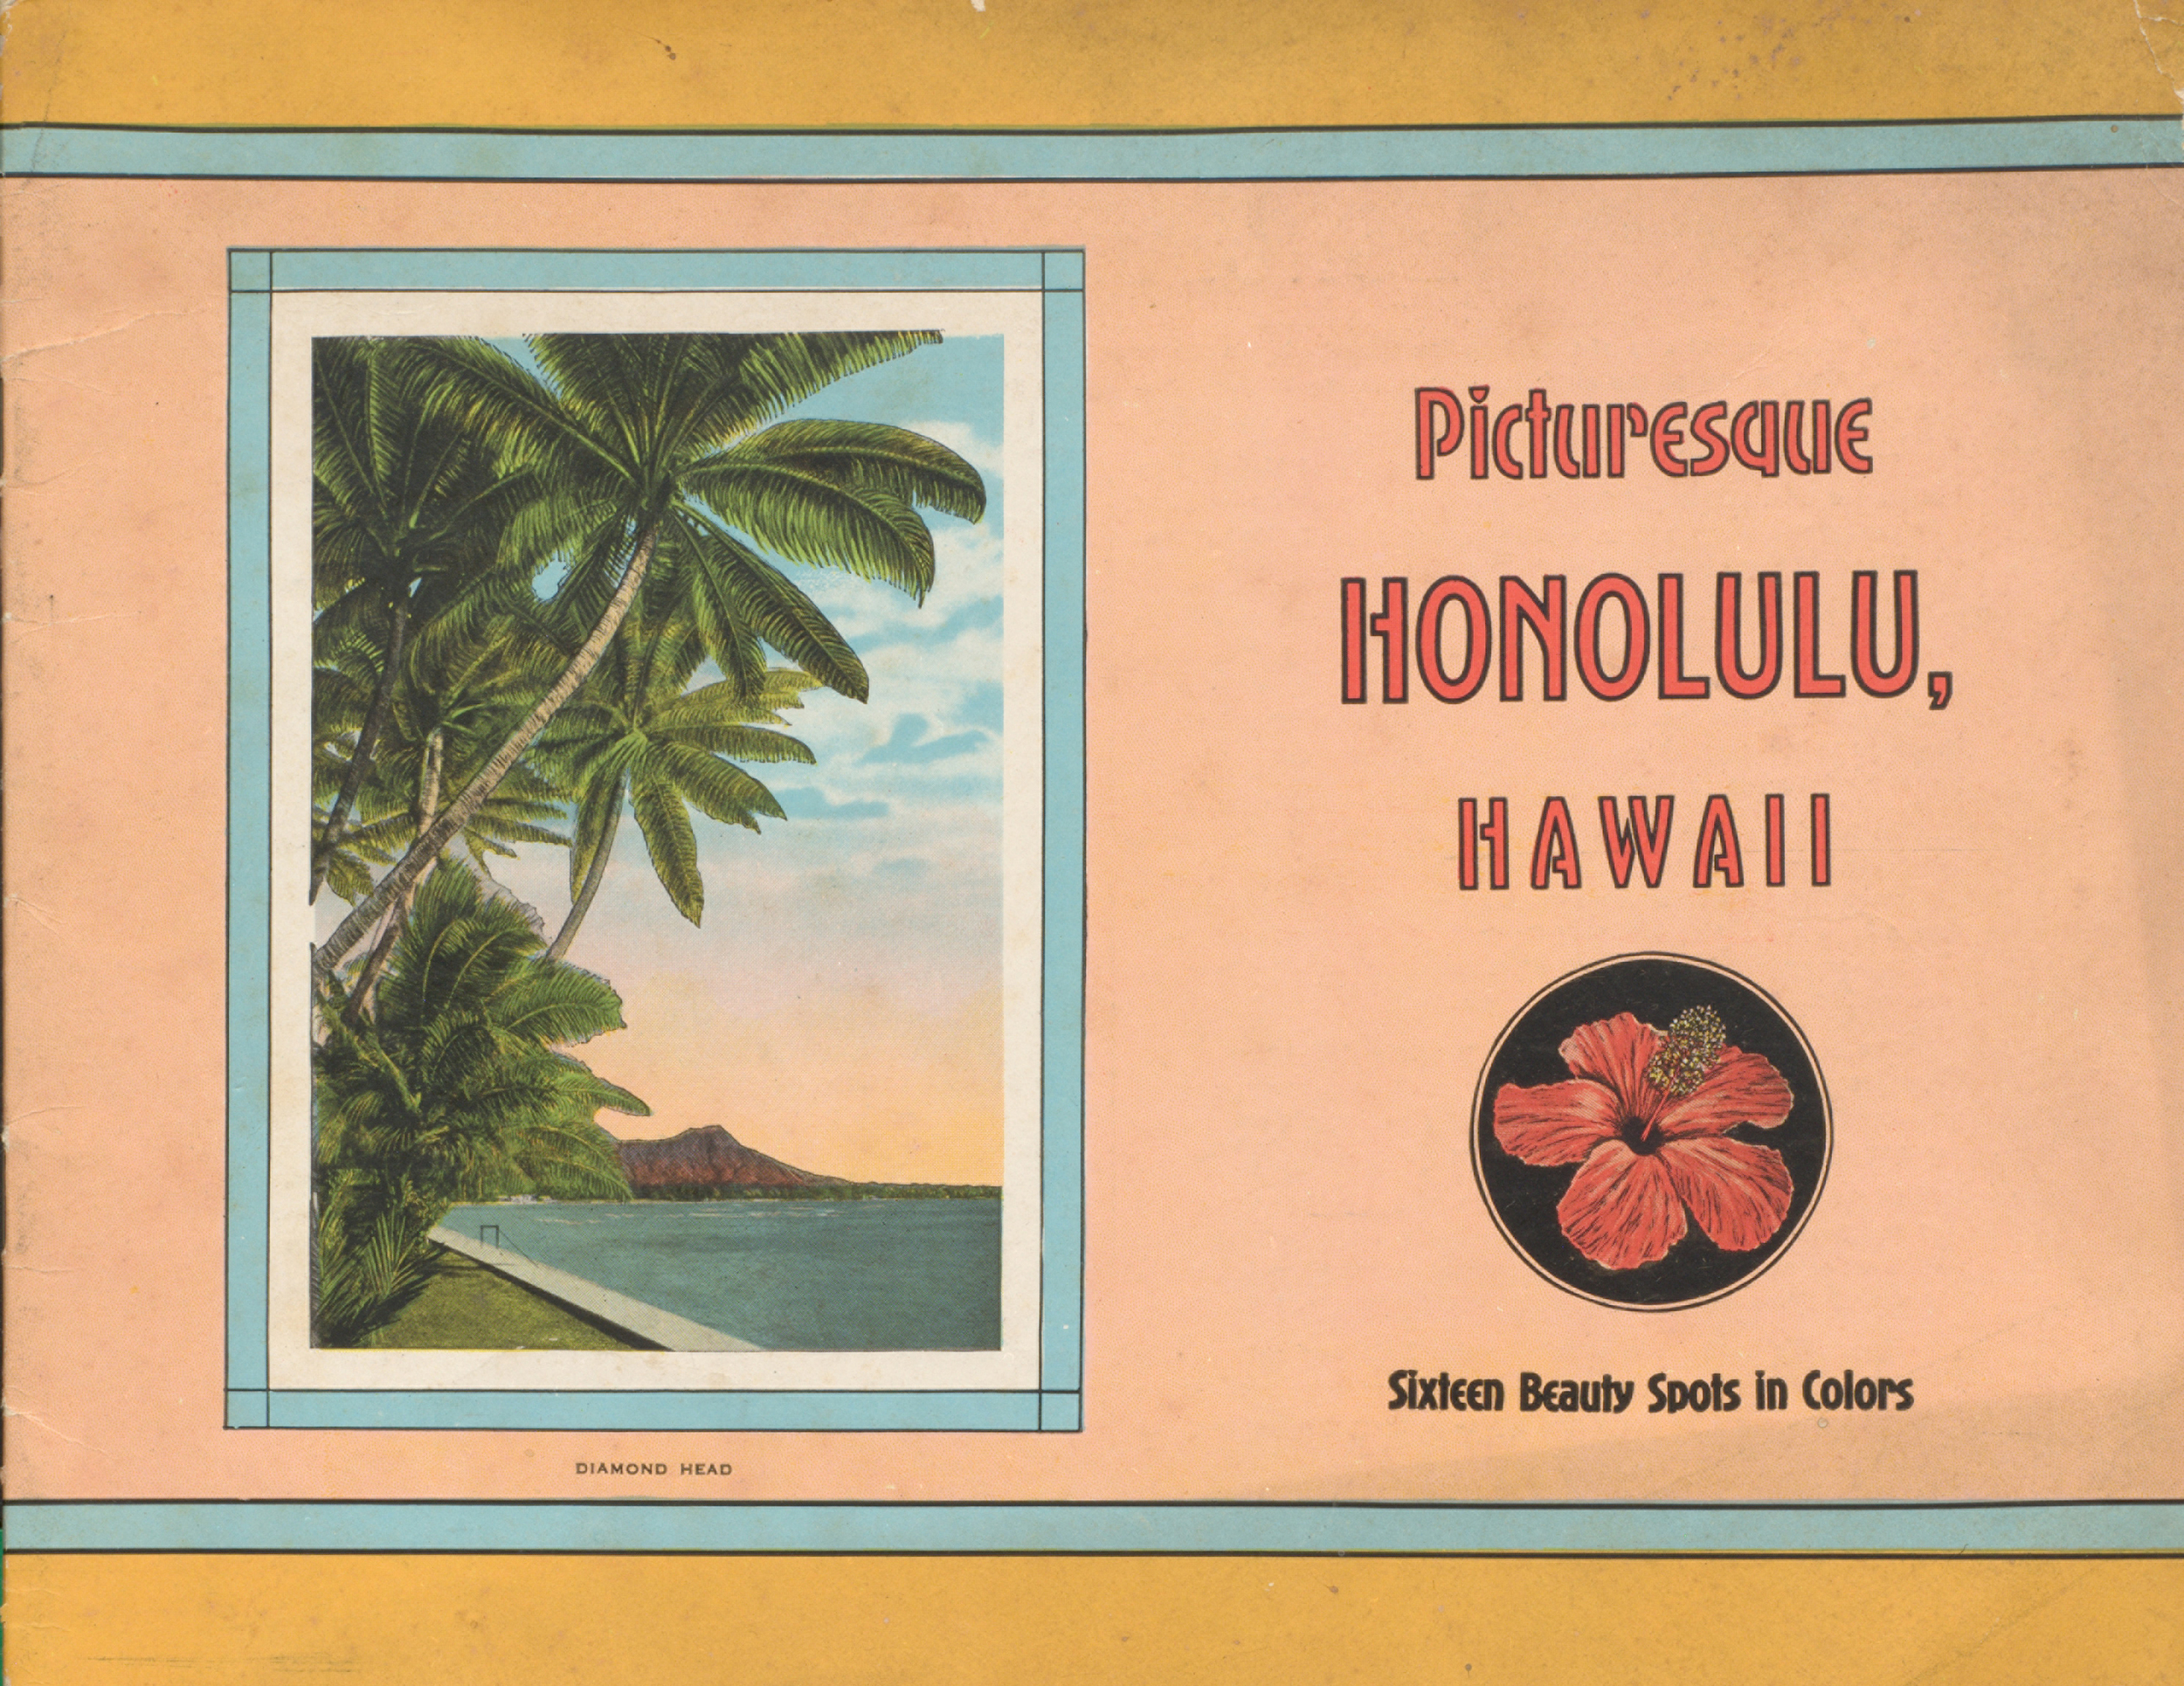 Picturesque Honolulu, Hawaii : Sixteen Beauty Spots in Colors. Cover.